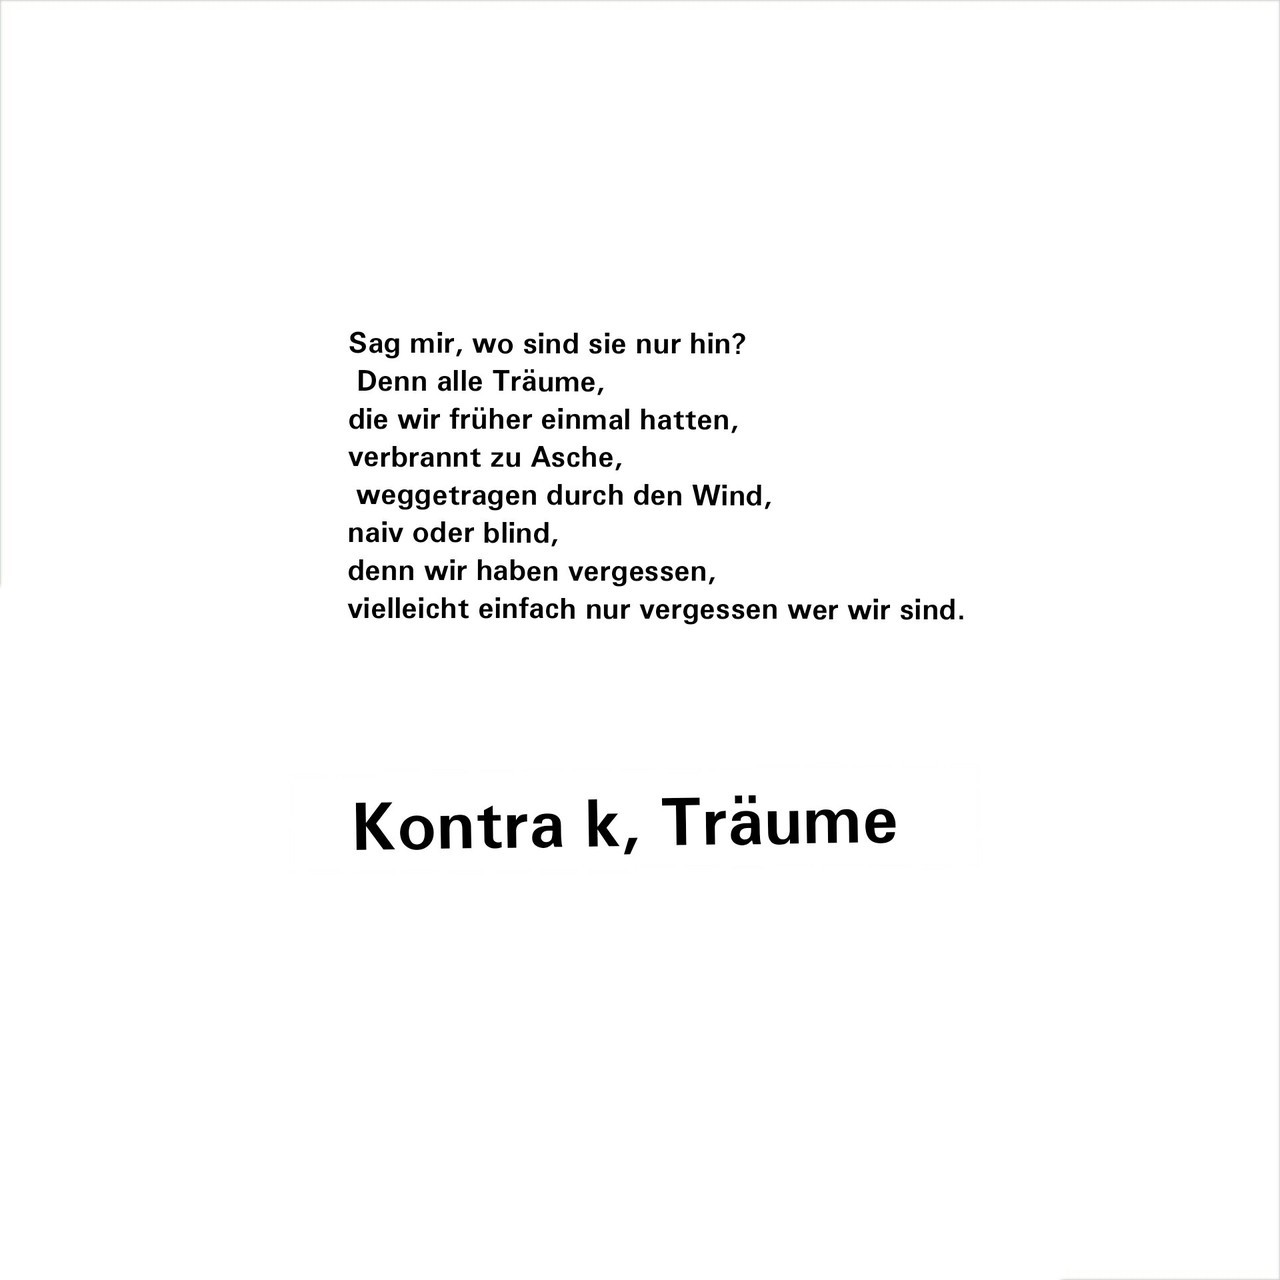 27 Images About Kontra K On We Heart It See More About